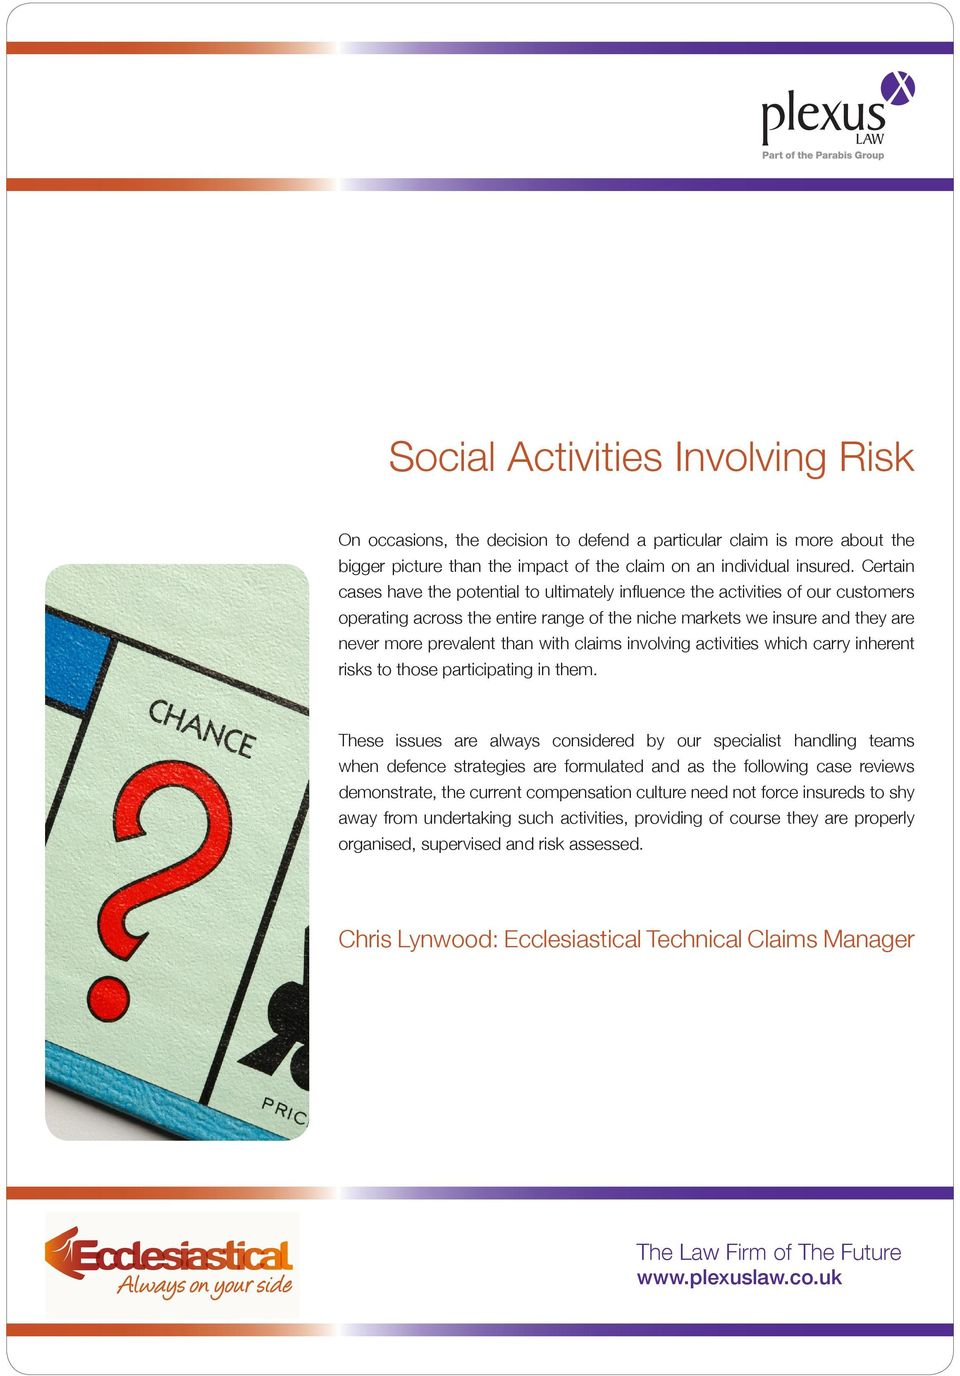 claims involving activities which carry inherent risks to those participating in them.